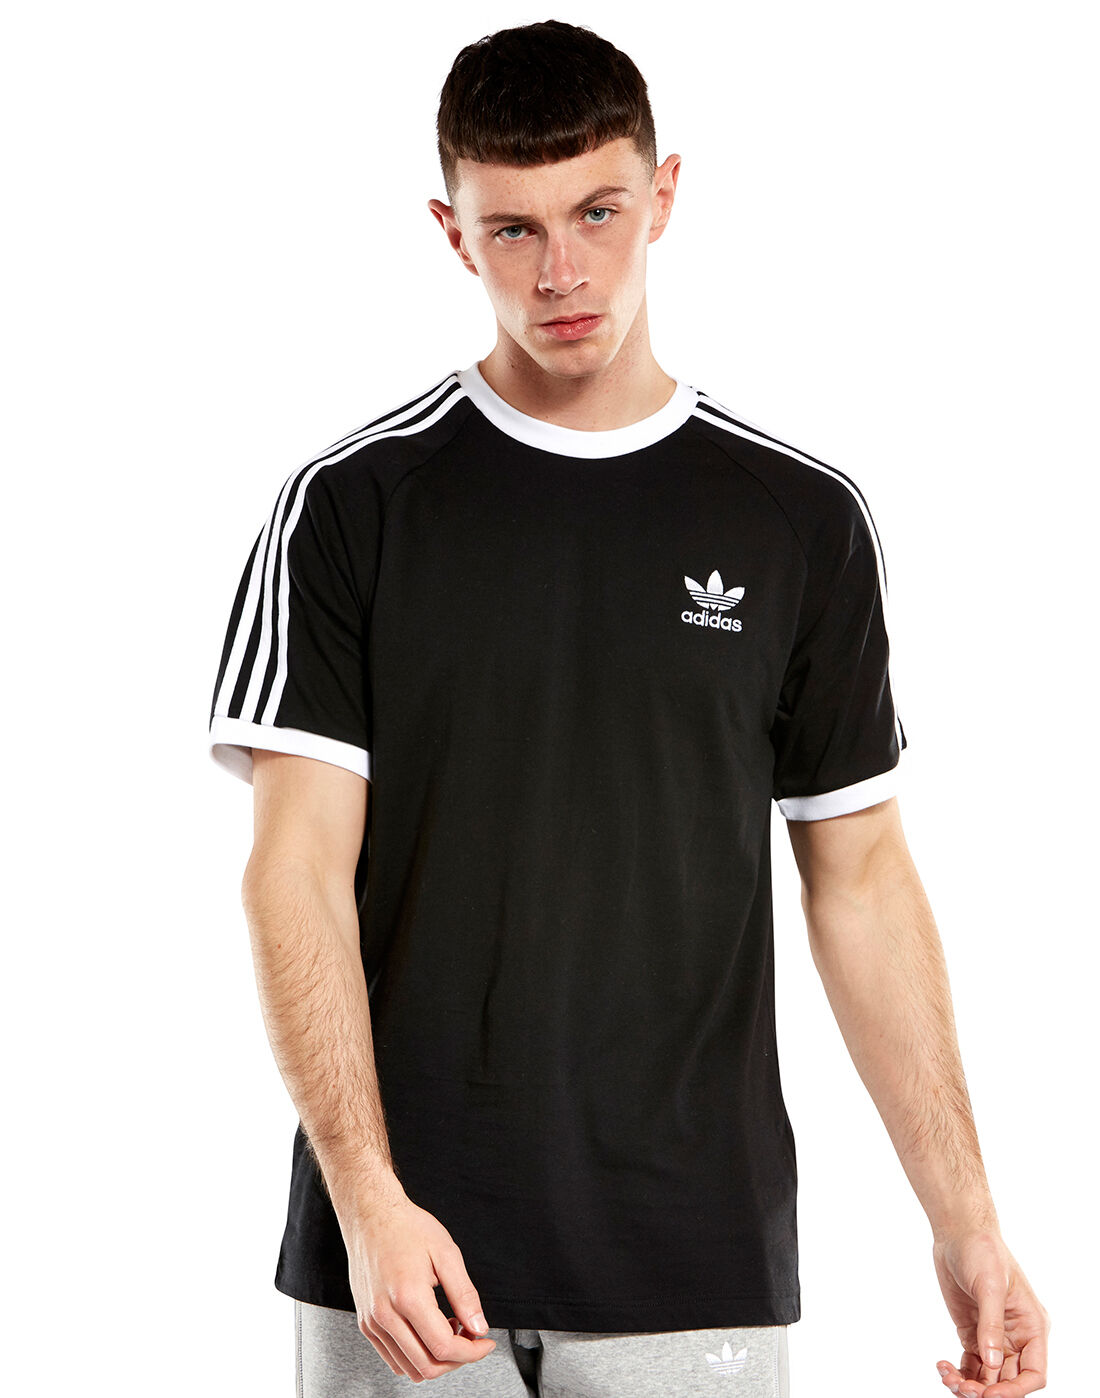 ADIDAS ORIGINALS 3 STRIPES Trefoil Tee Männer T Shirt